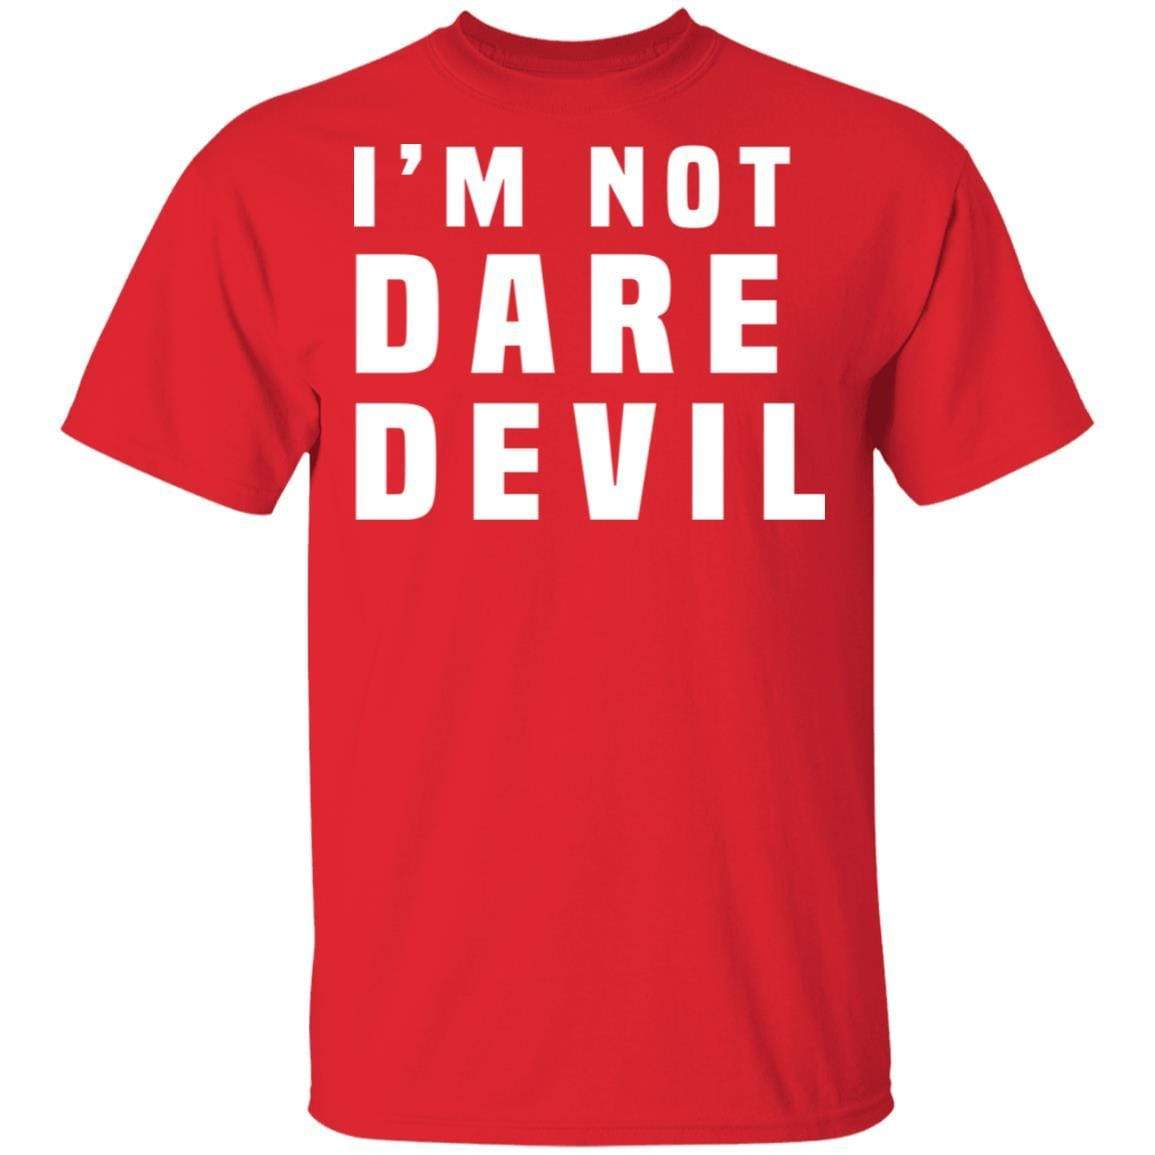 I'm Not Dare Devil T-Shirts, Hoodies 1049-9970-87589167-48278 - Tee Ript